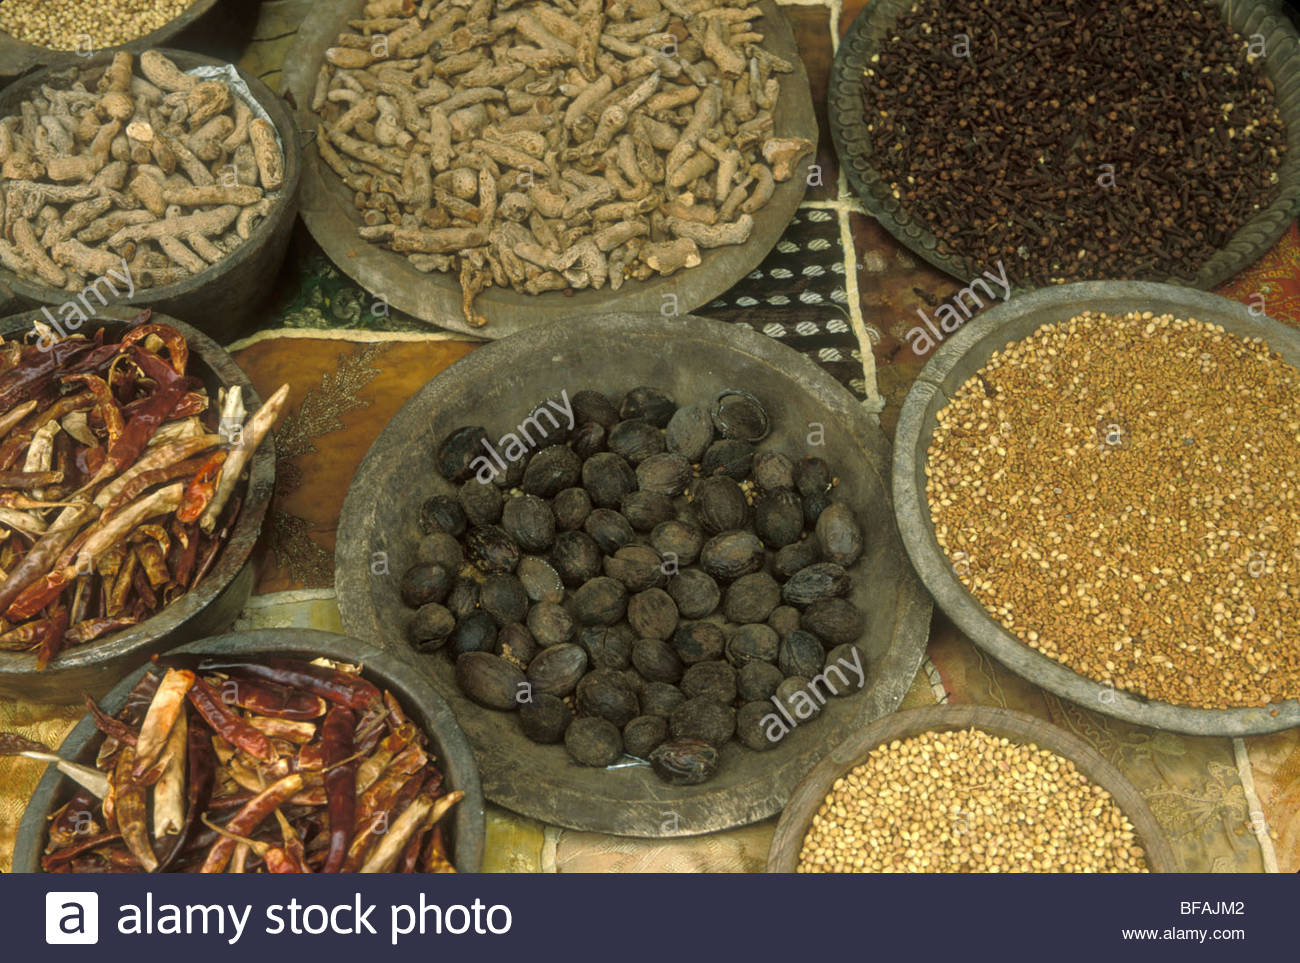 Spices grown in Western Ghats, Cochin, Kerala, India - Stock Image